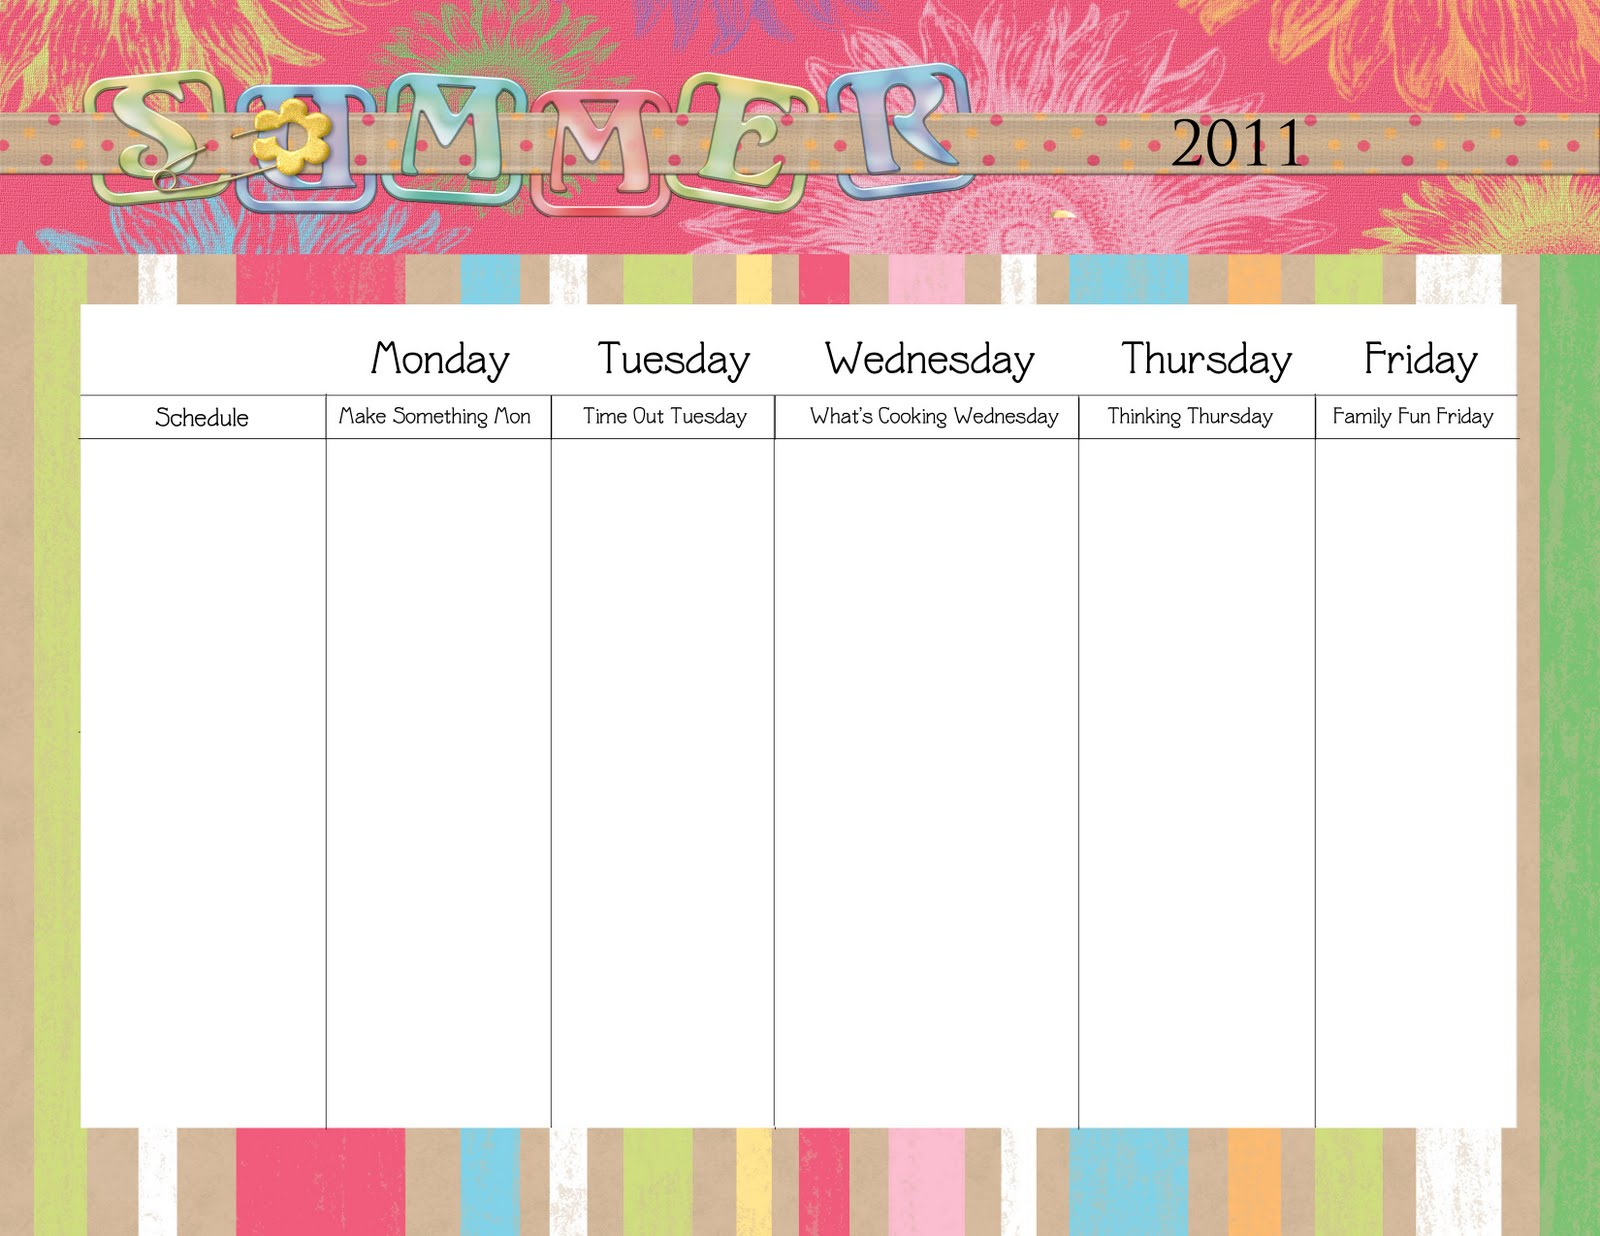 The second calendar you can download is completely blank so that you